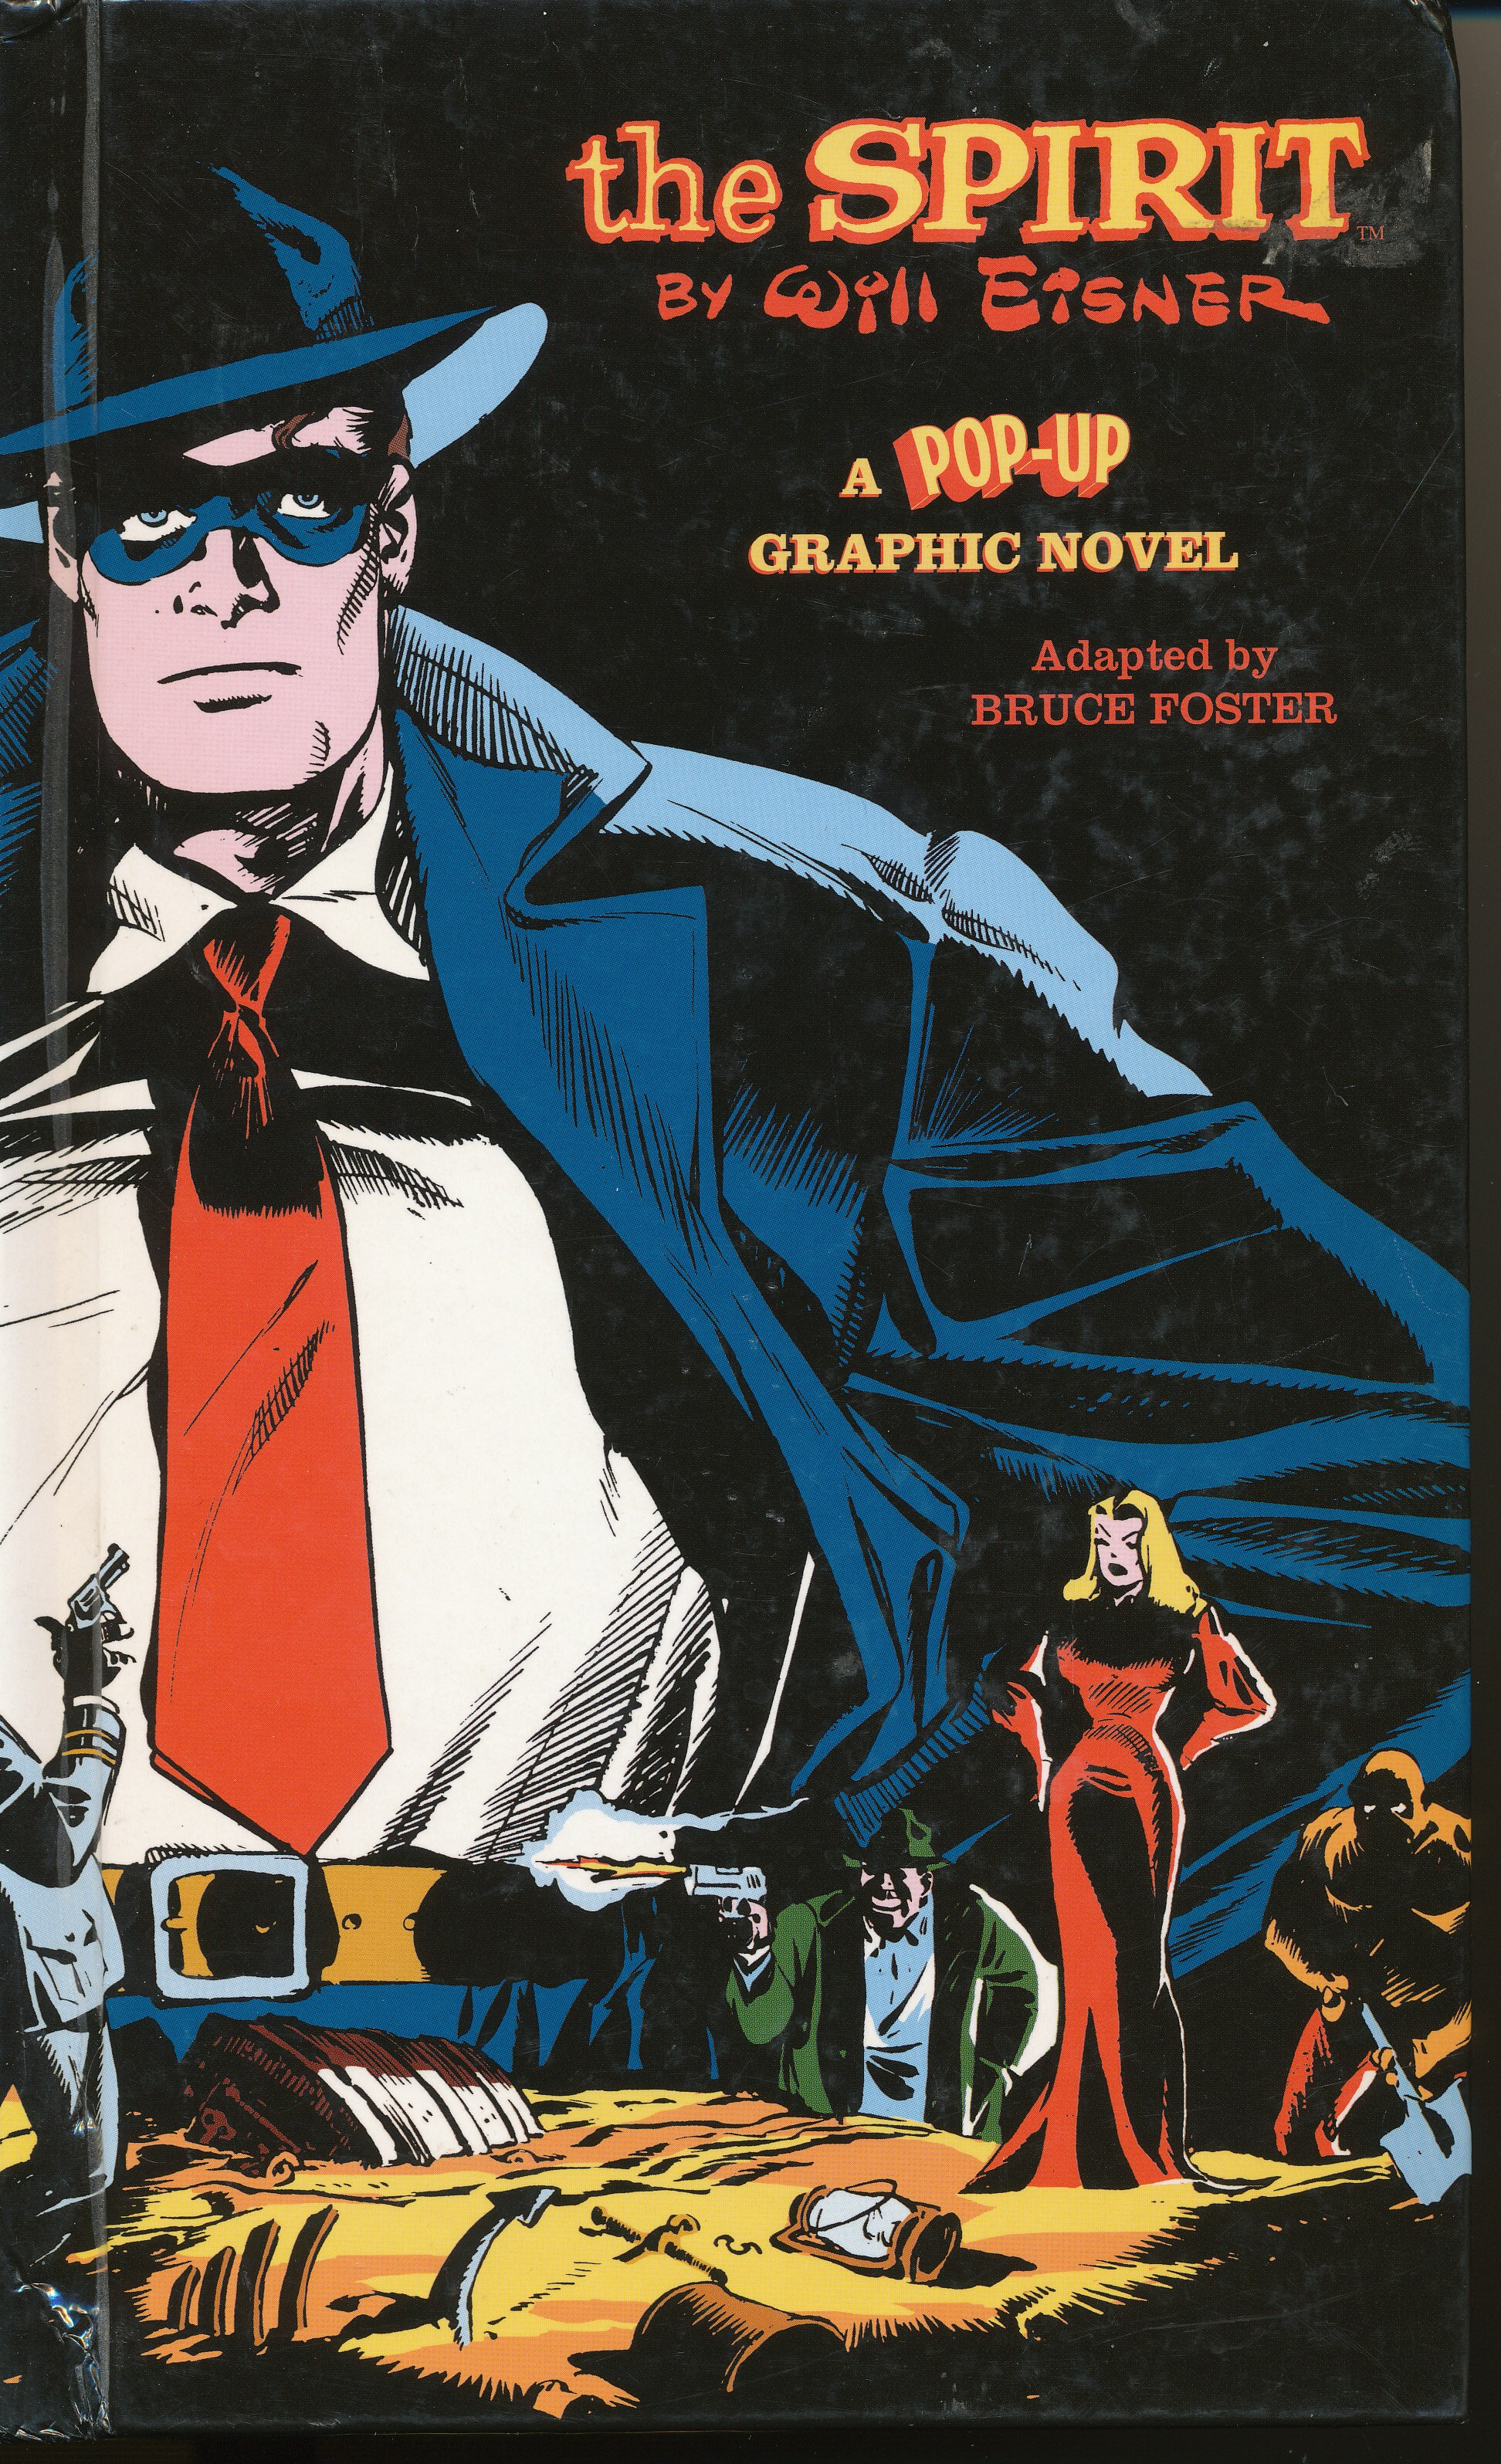 the Spirit by Will Eisner-A Pop-up Graphic Novel